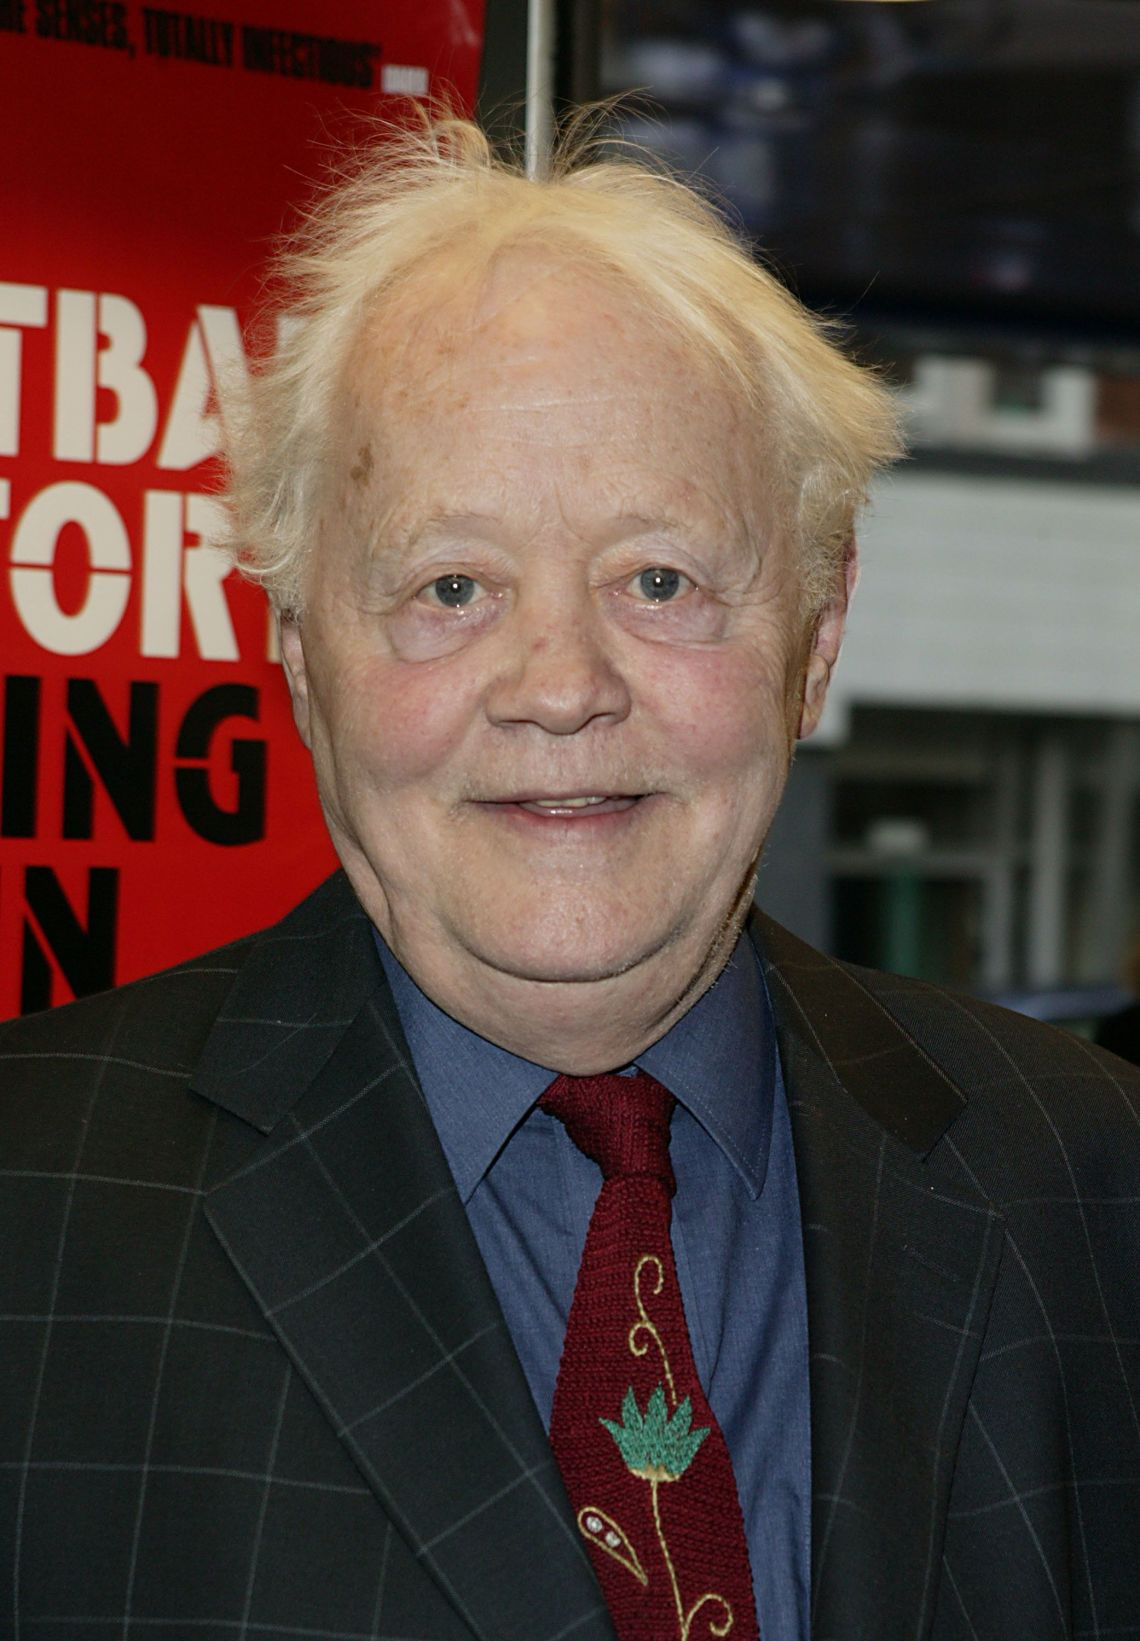 Dudley Sutton has died at the age of 85